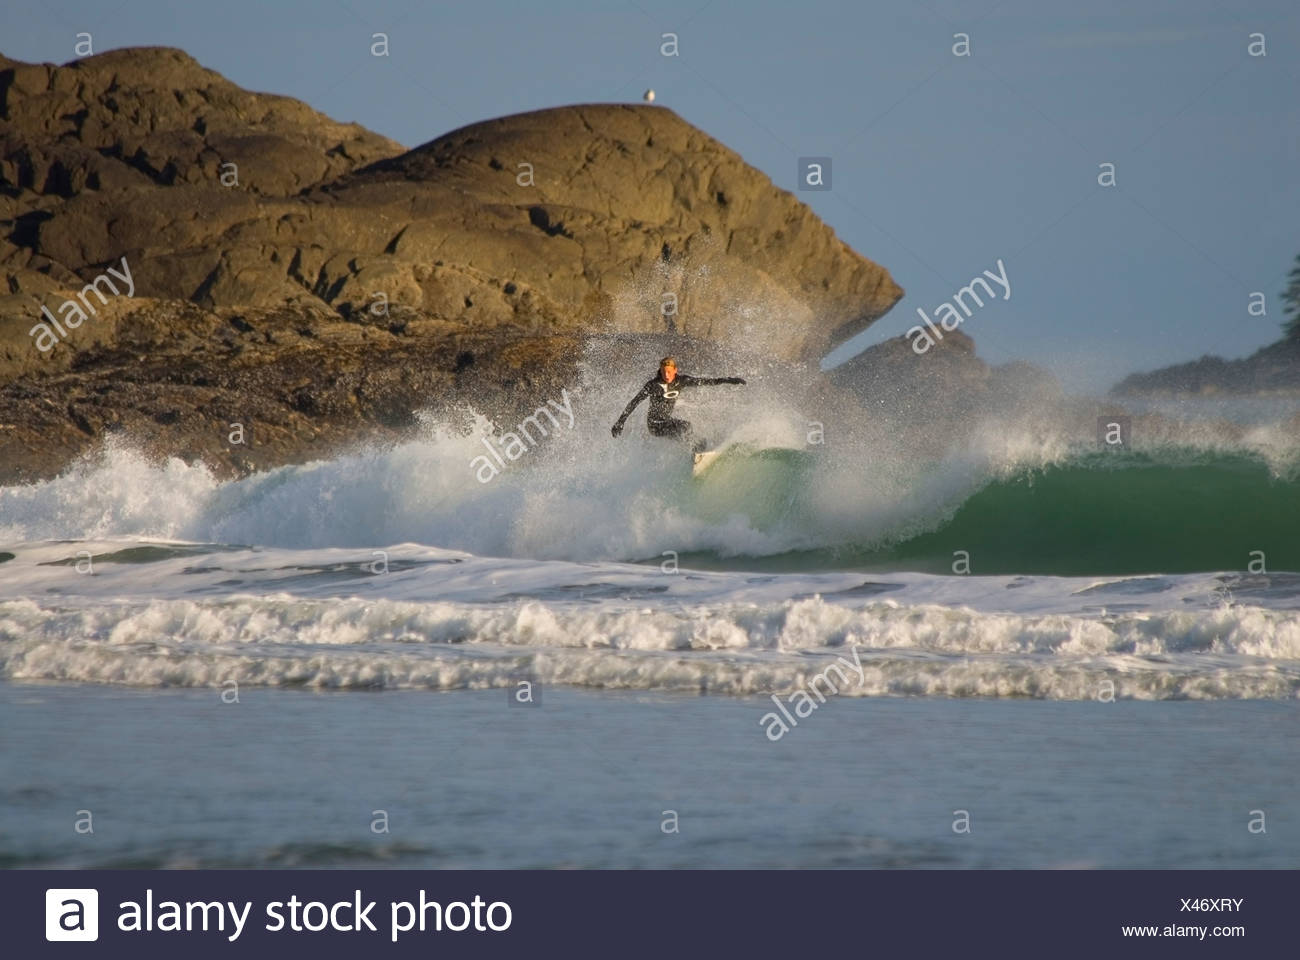 A surfer challenges the breakers at Cox Bay, near Tofino, on the west coast of Vancouver Island, British Columbia, Canada. - Stock Image